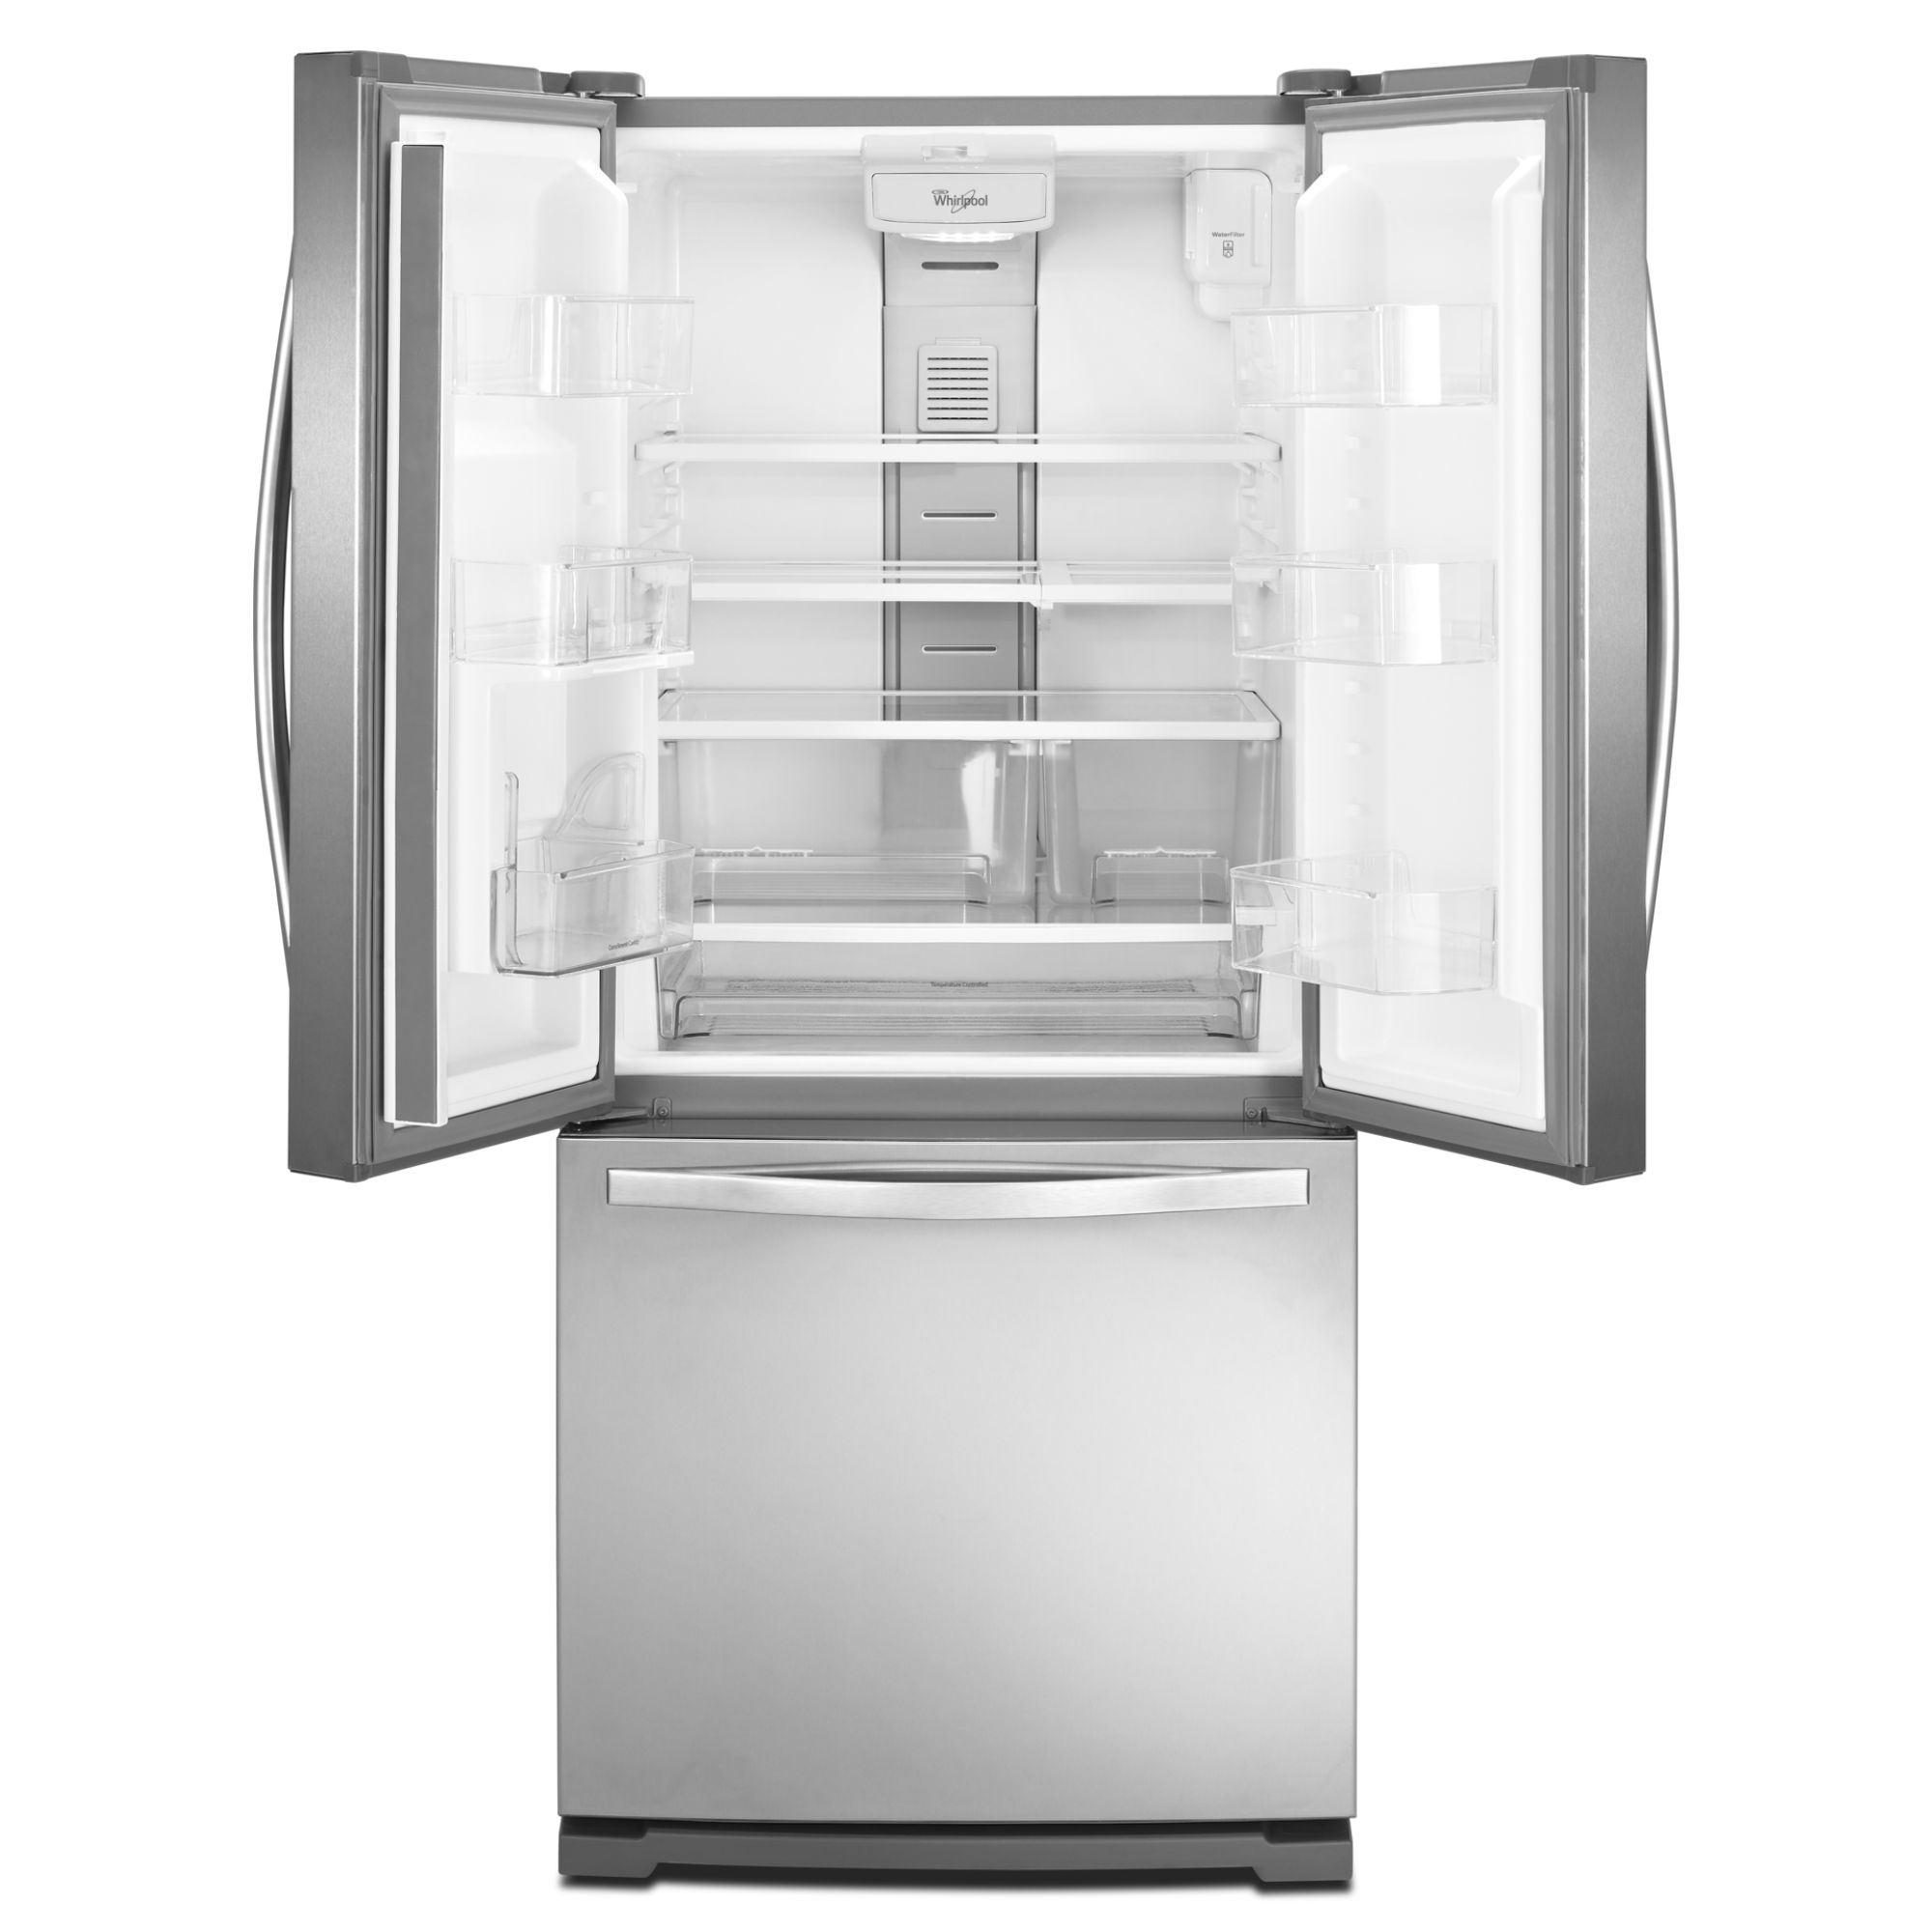 Whirlpool 19.6 cu. ft. French Door Refrigerator w/ Exterior Dispenser - Stainless Steel